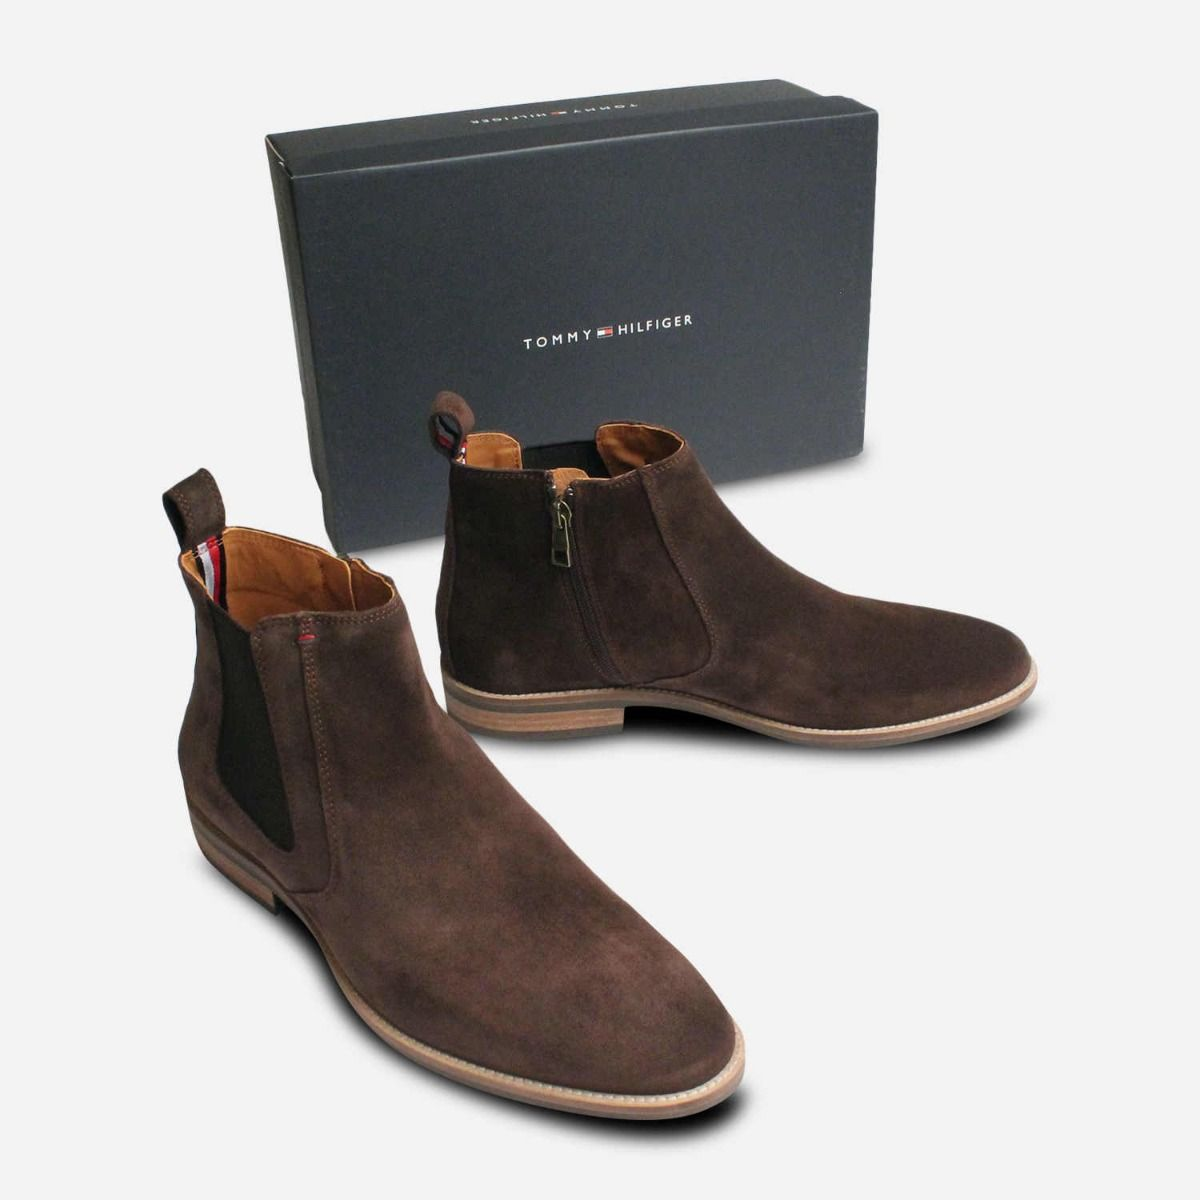 Tommy Hilfiger Brown Suede Chelsea Zip Boots for Men